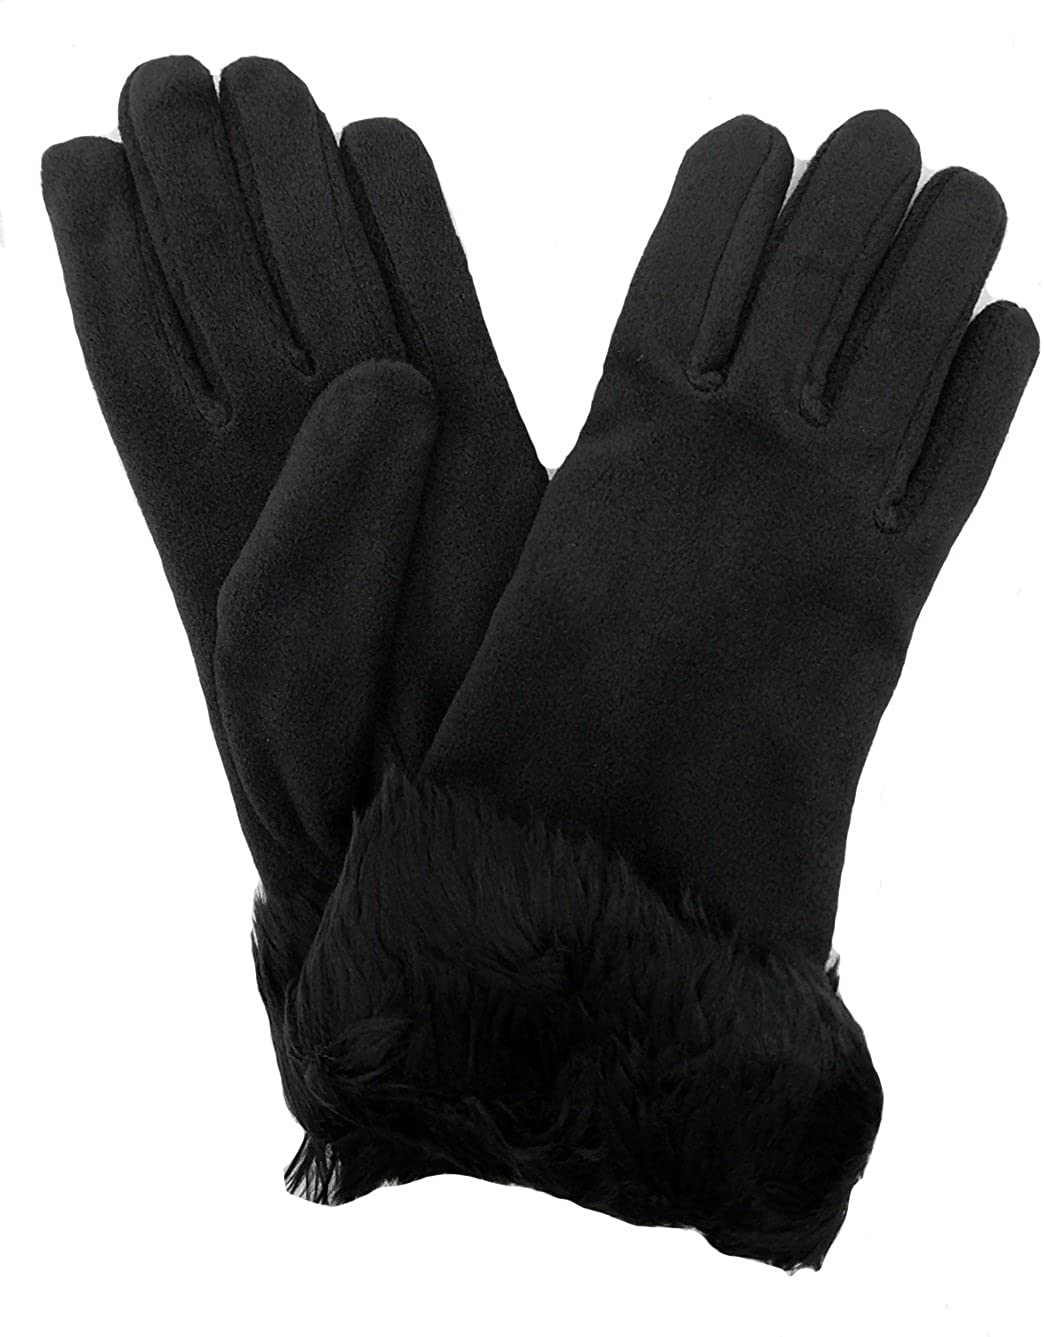 Isotoner Women's Casual Stretch Fleece Gloves One Size A56135 (Black)